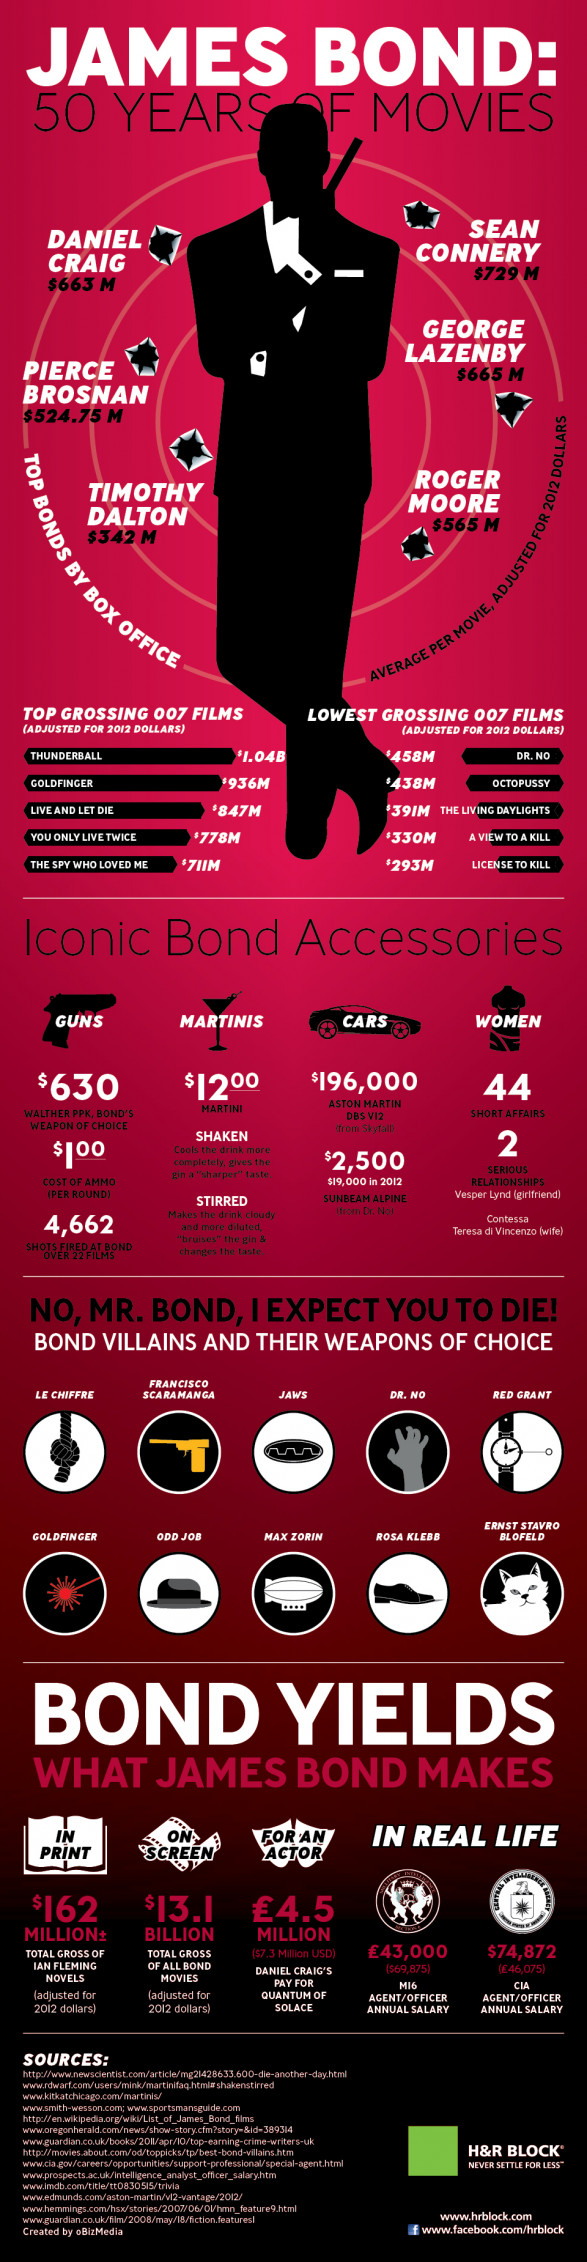 James Bond: 50 Years of Movies